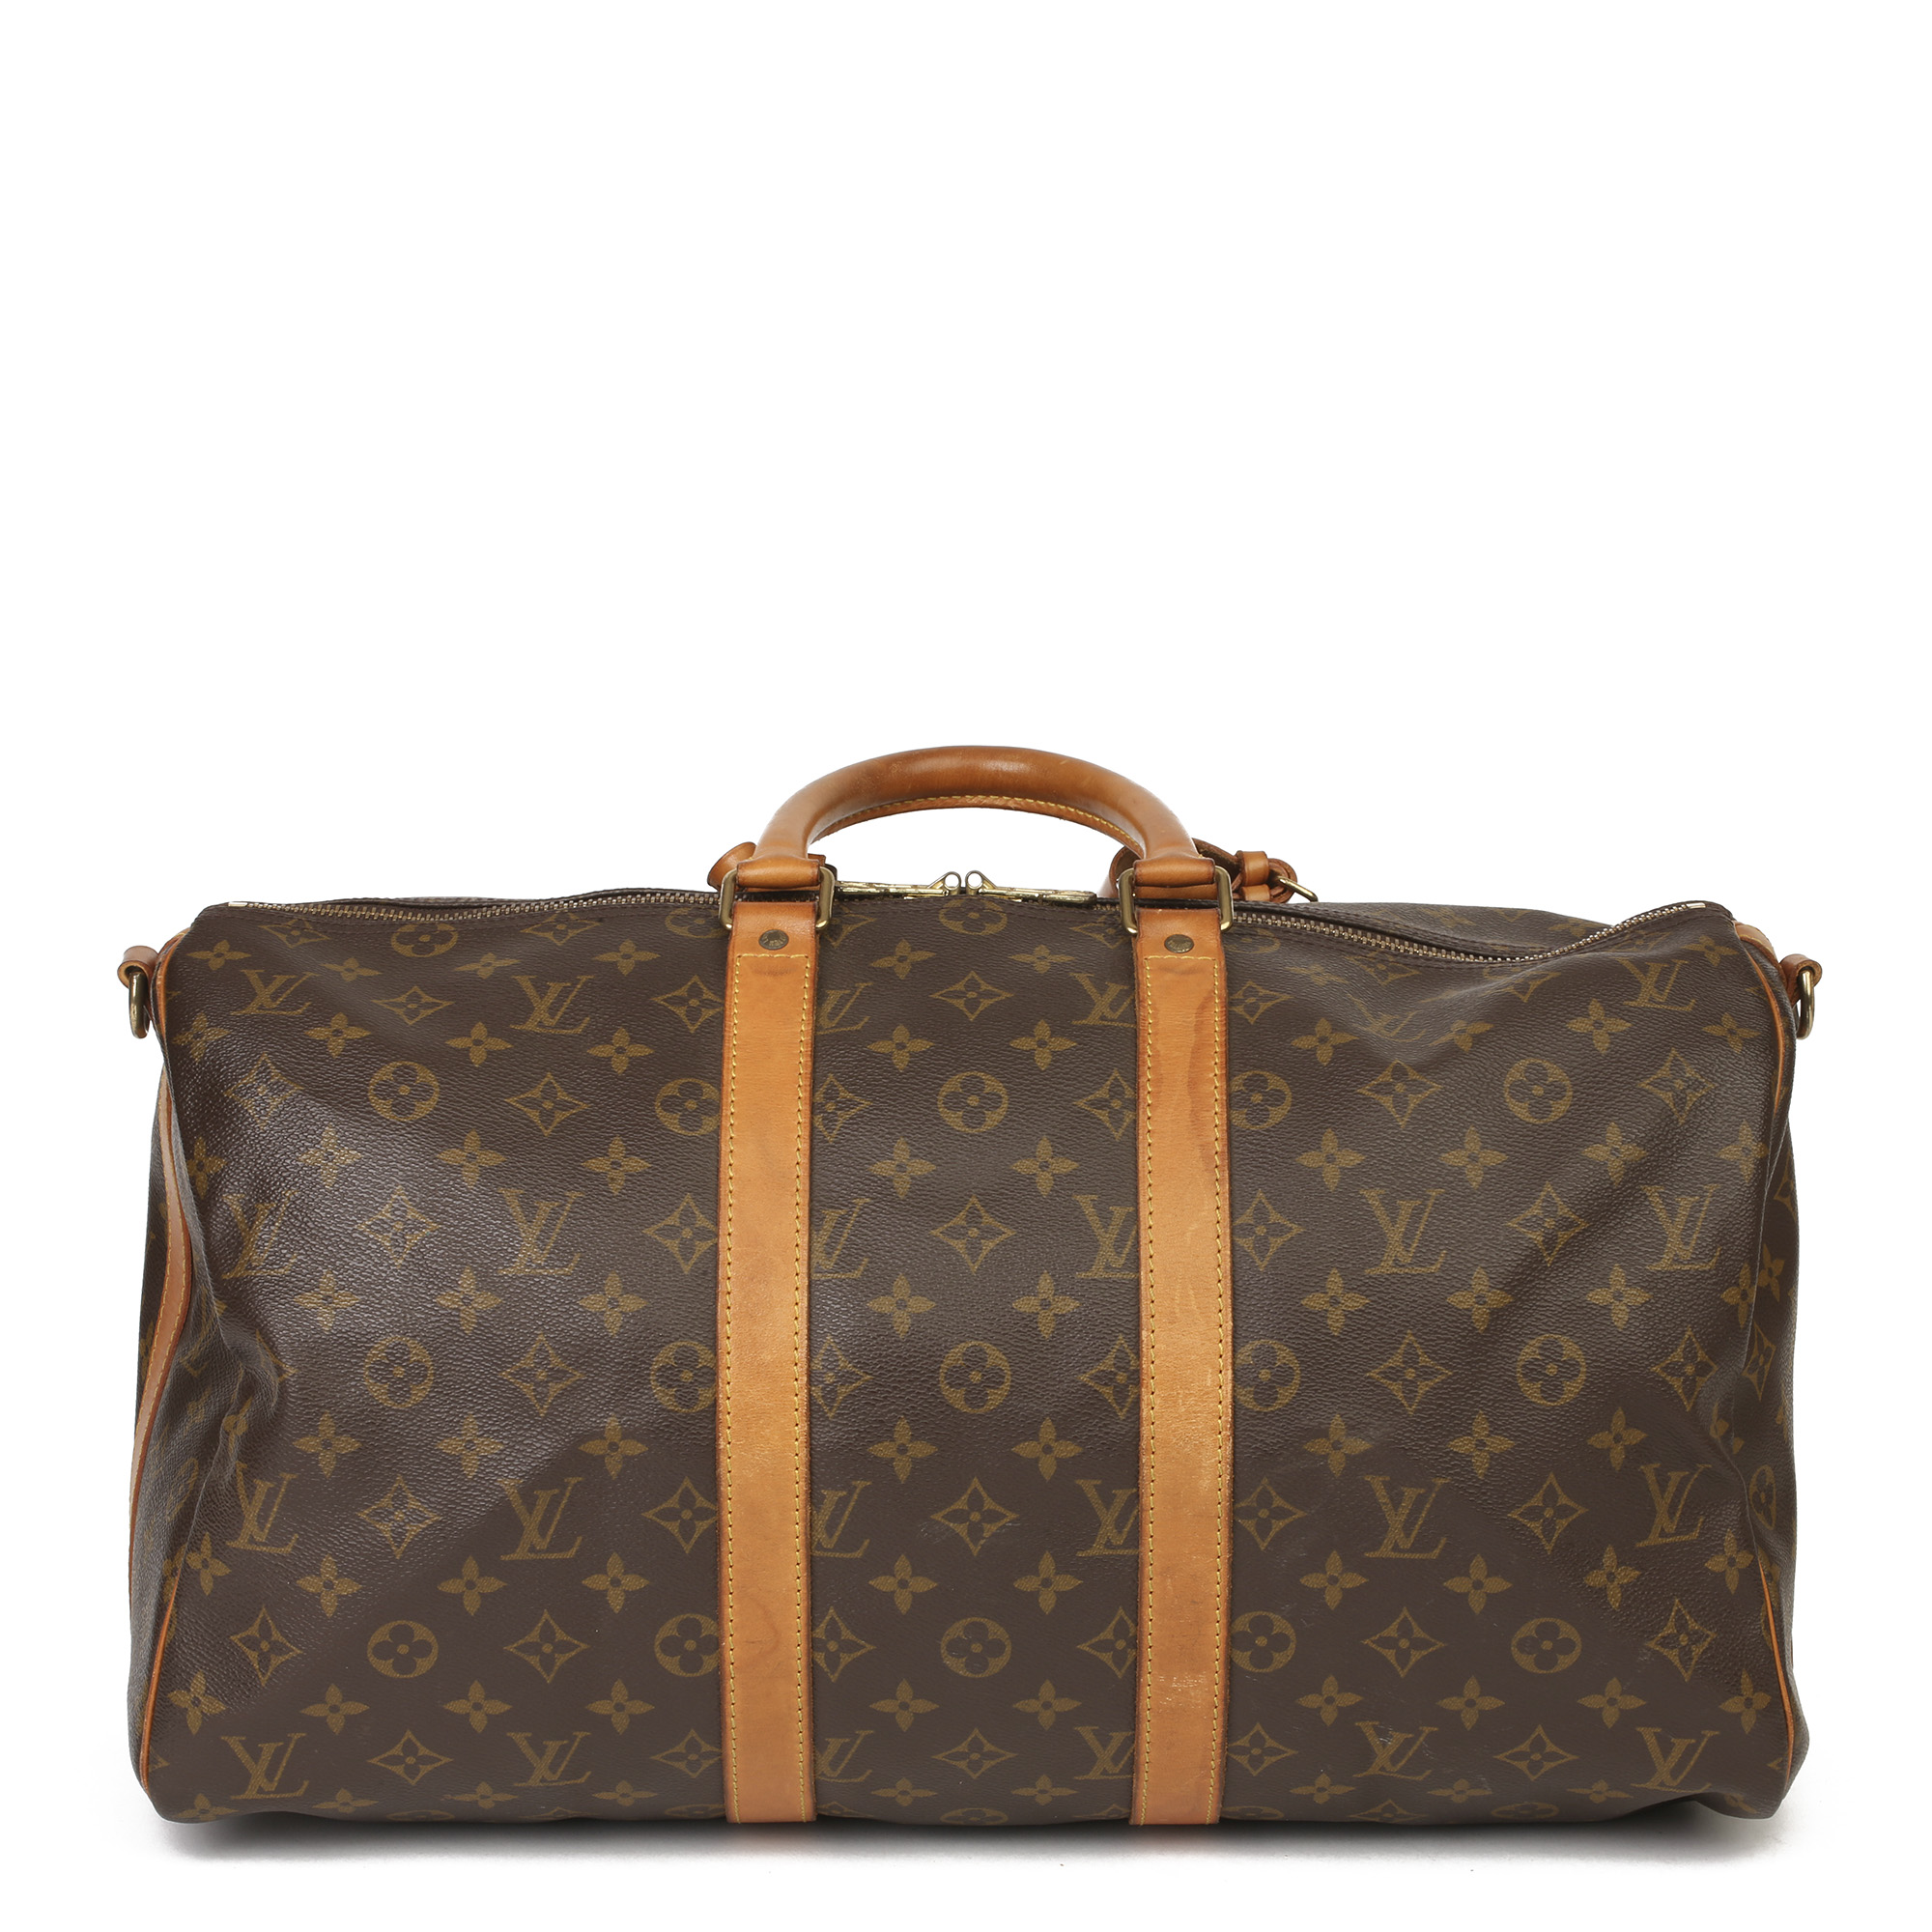 Louis Vuitton Brown Monogram Coated Canvas & Vachetta Leather Vintage Keepall 45 Bandoulire - Image 11 of 13